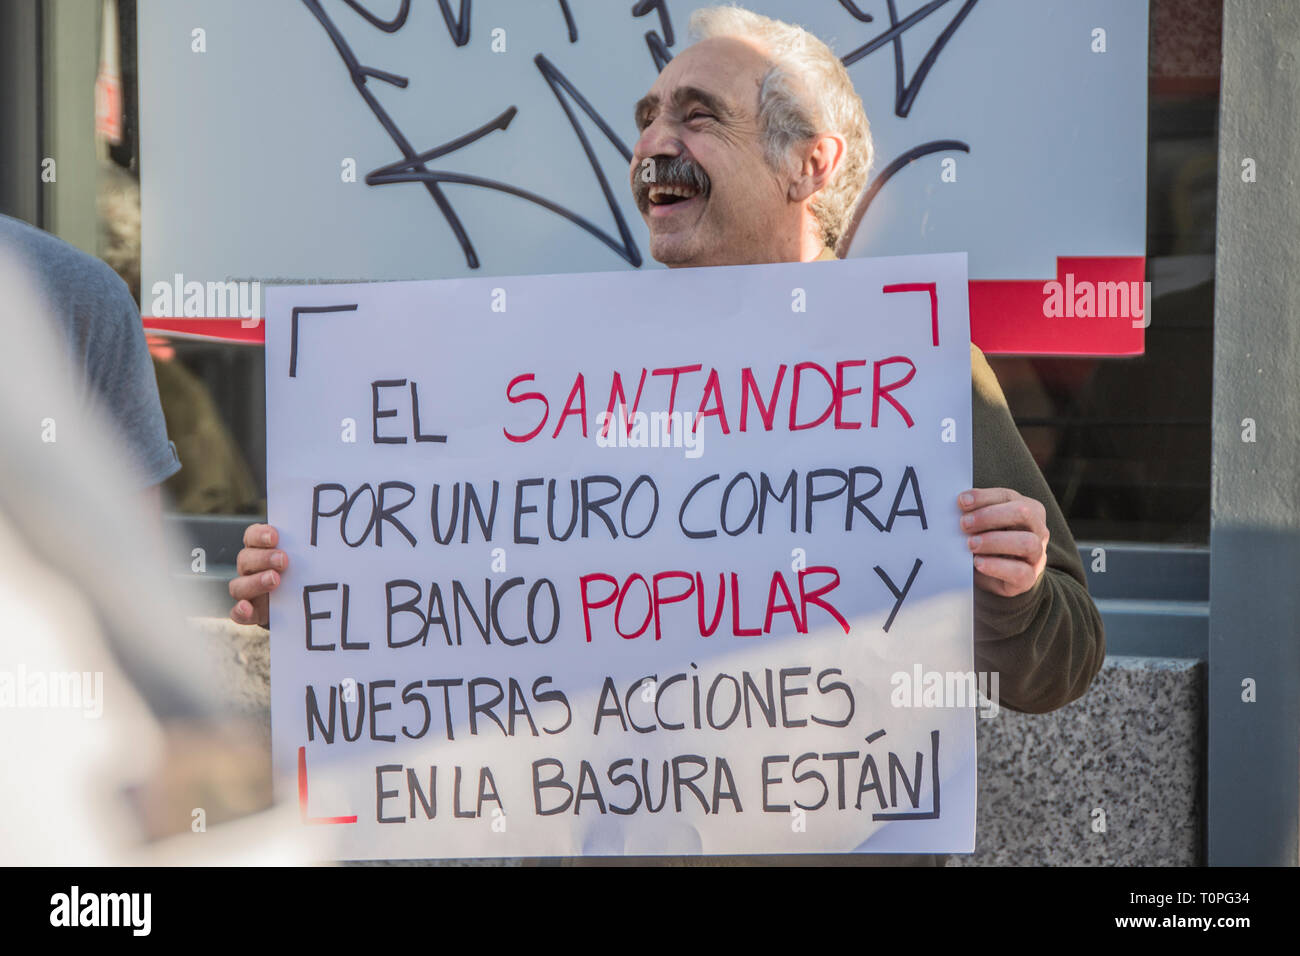 A man with a placard with the motto  Santander bank for one euro buys the popular bank and our shares in the trash are. Demonstration against the popular bank, of the group of Santander bank by the small shareholders swindled in the year 2018. 305,000 shareholders lost all their money for the bankrupt of the popular bank. executed by the fraud of the group of Emilio Saracho with the bank of Spain. Credit: Alberto Sibaja Ramírez/Alamy Live News - Stock Image